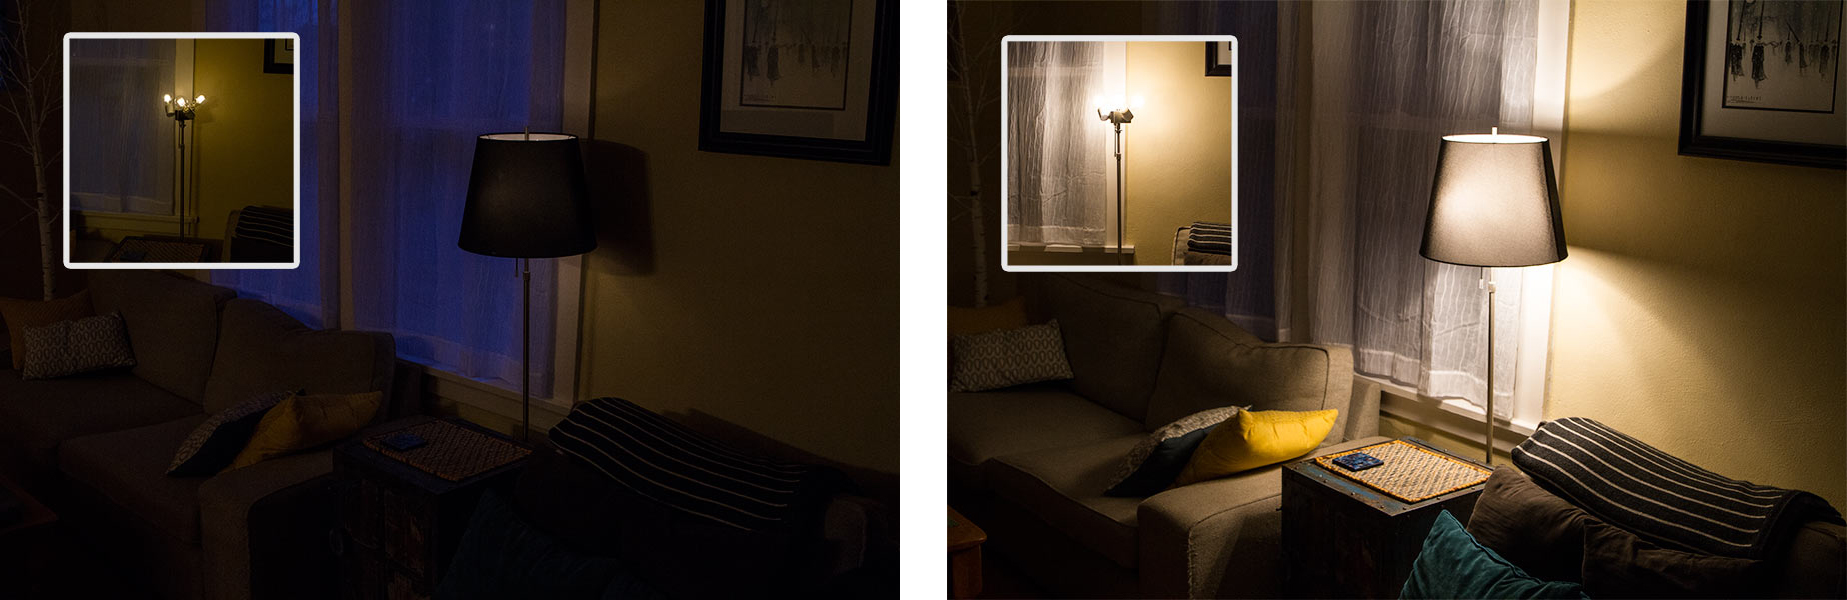 How To Light A Room With LED Lights   Dimmable LED Lights